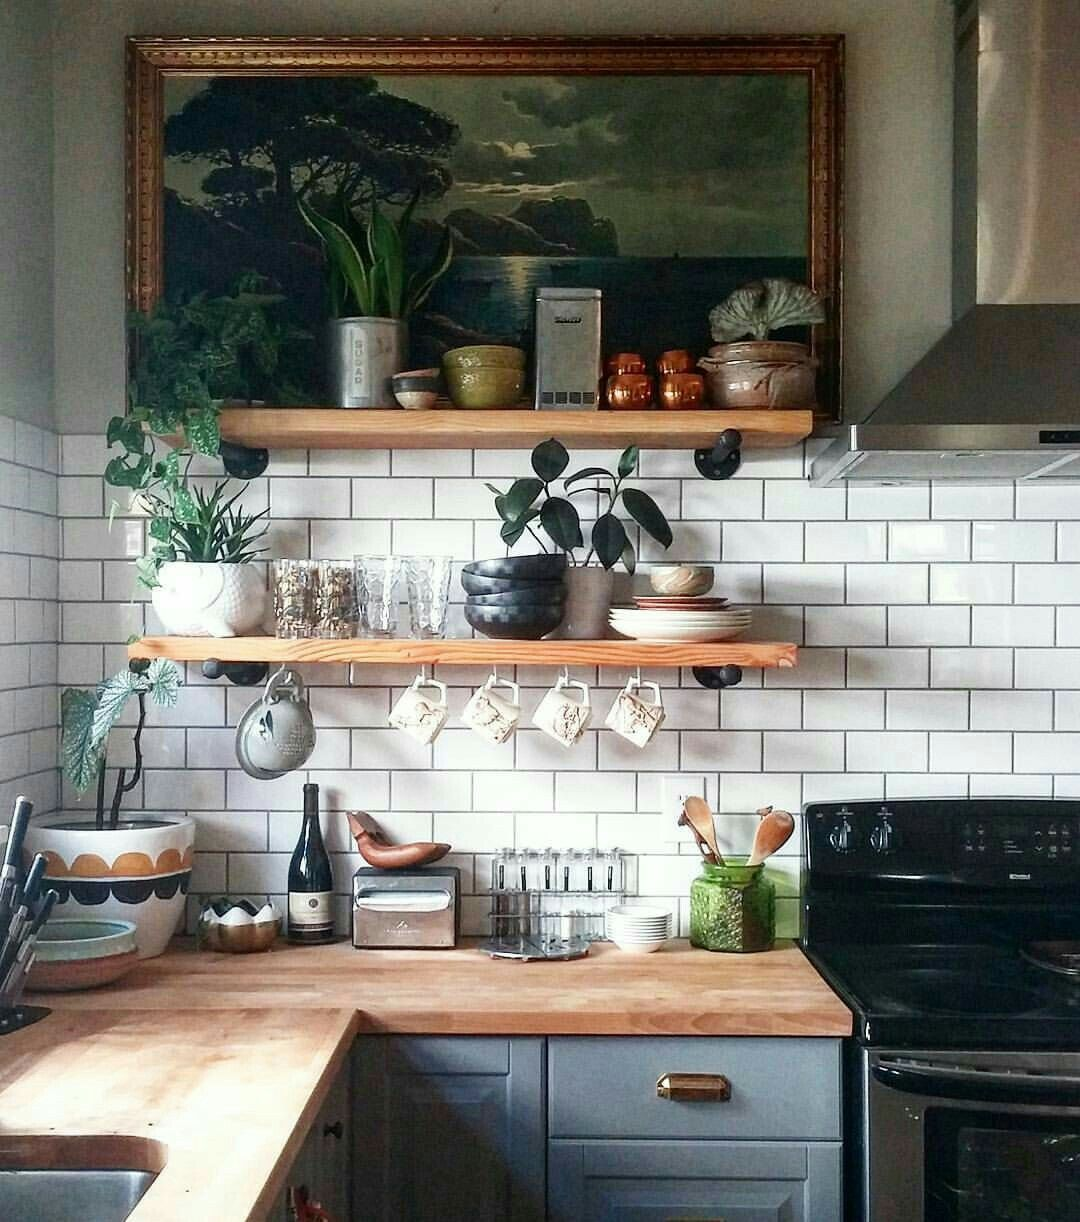 Apartment ideas Pin by Aleksandra on kitchen